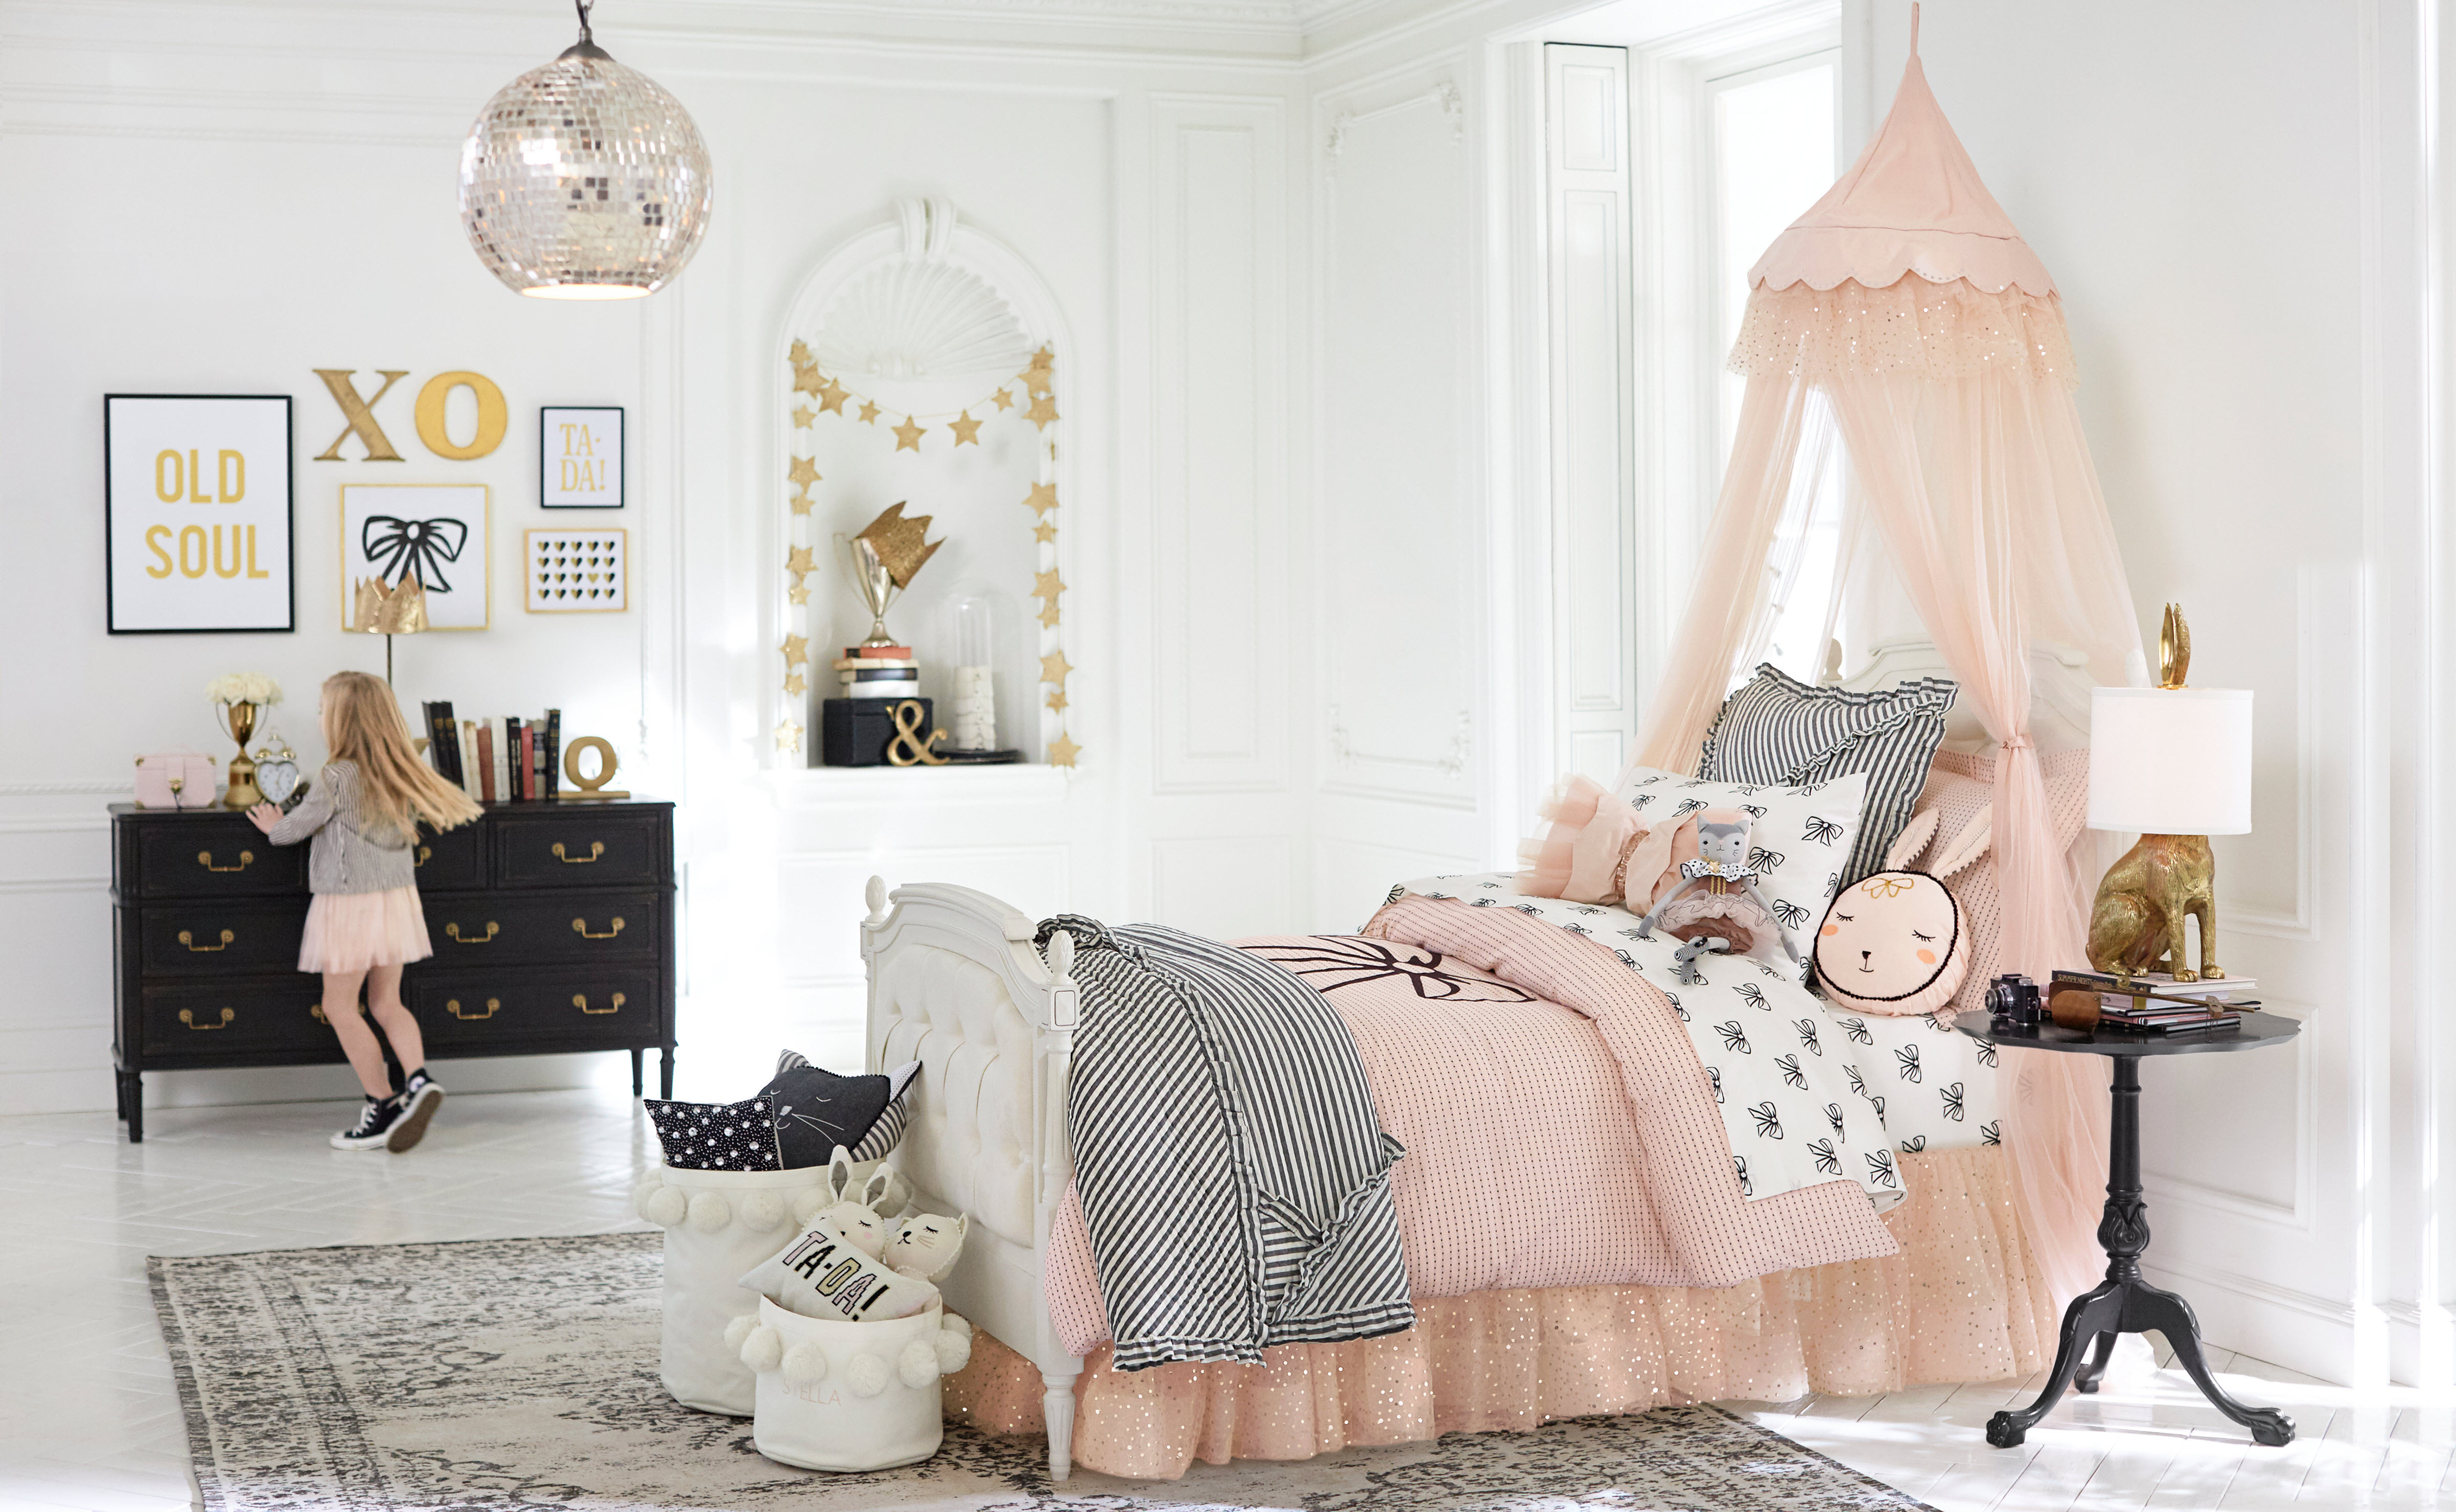 POTTERY BARN KIDS UNVEILS IMAGINATIVE NEW COLLECTION WITH FASHION ...